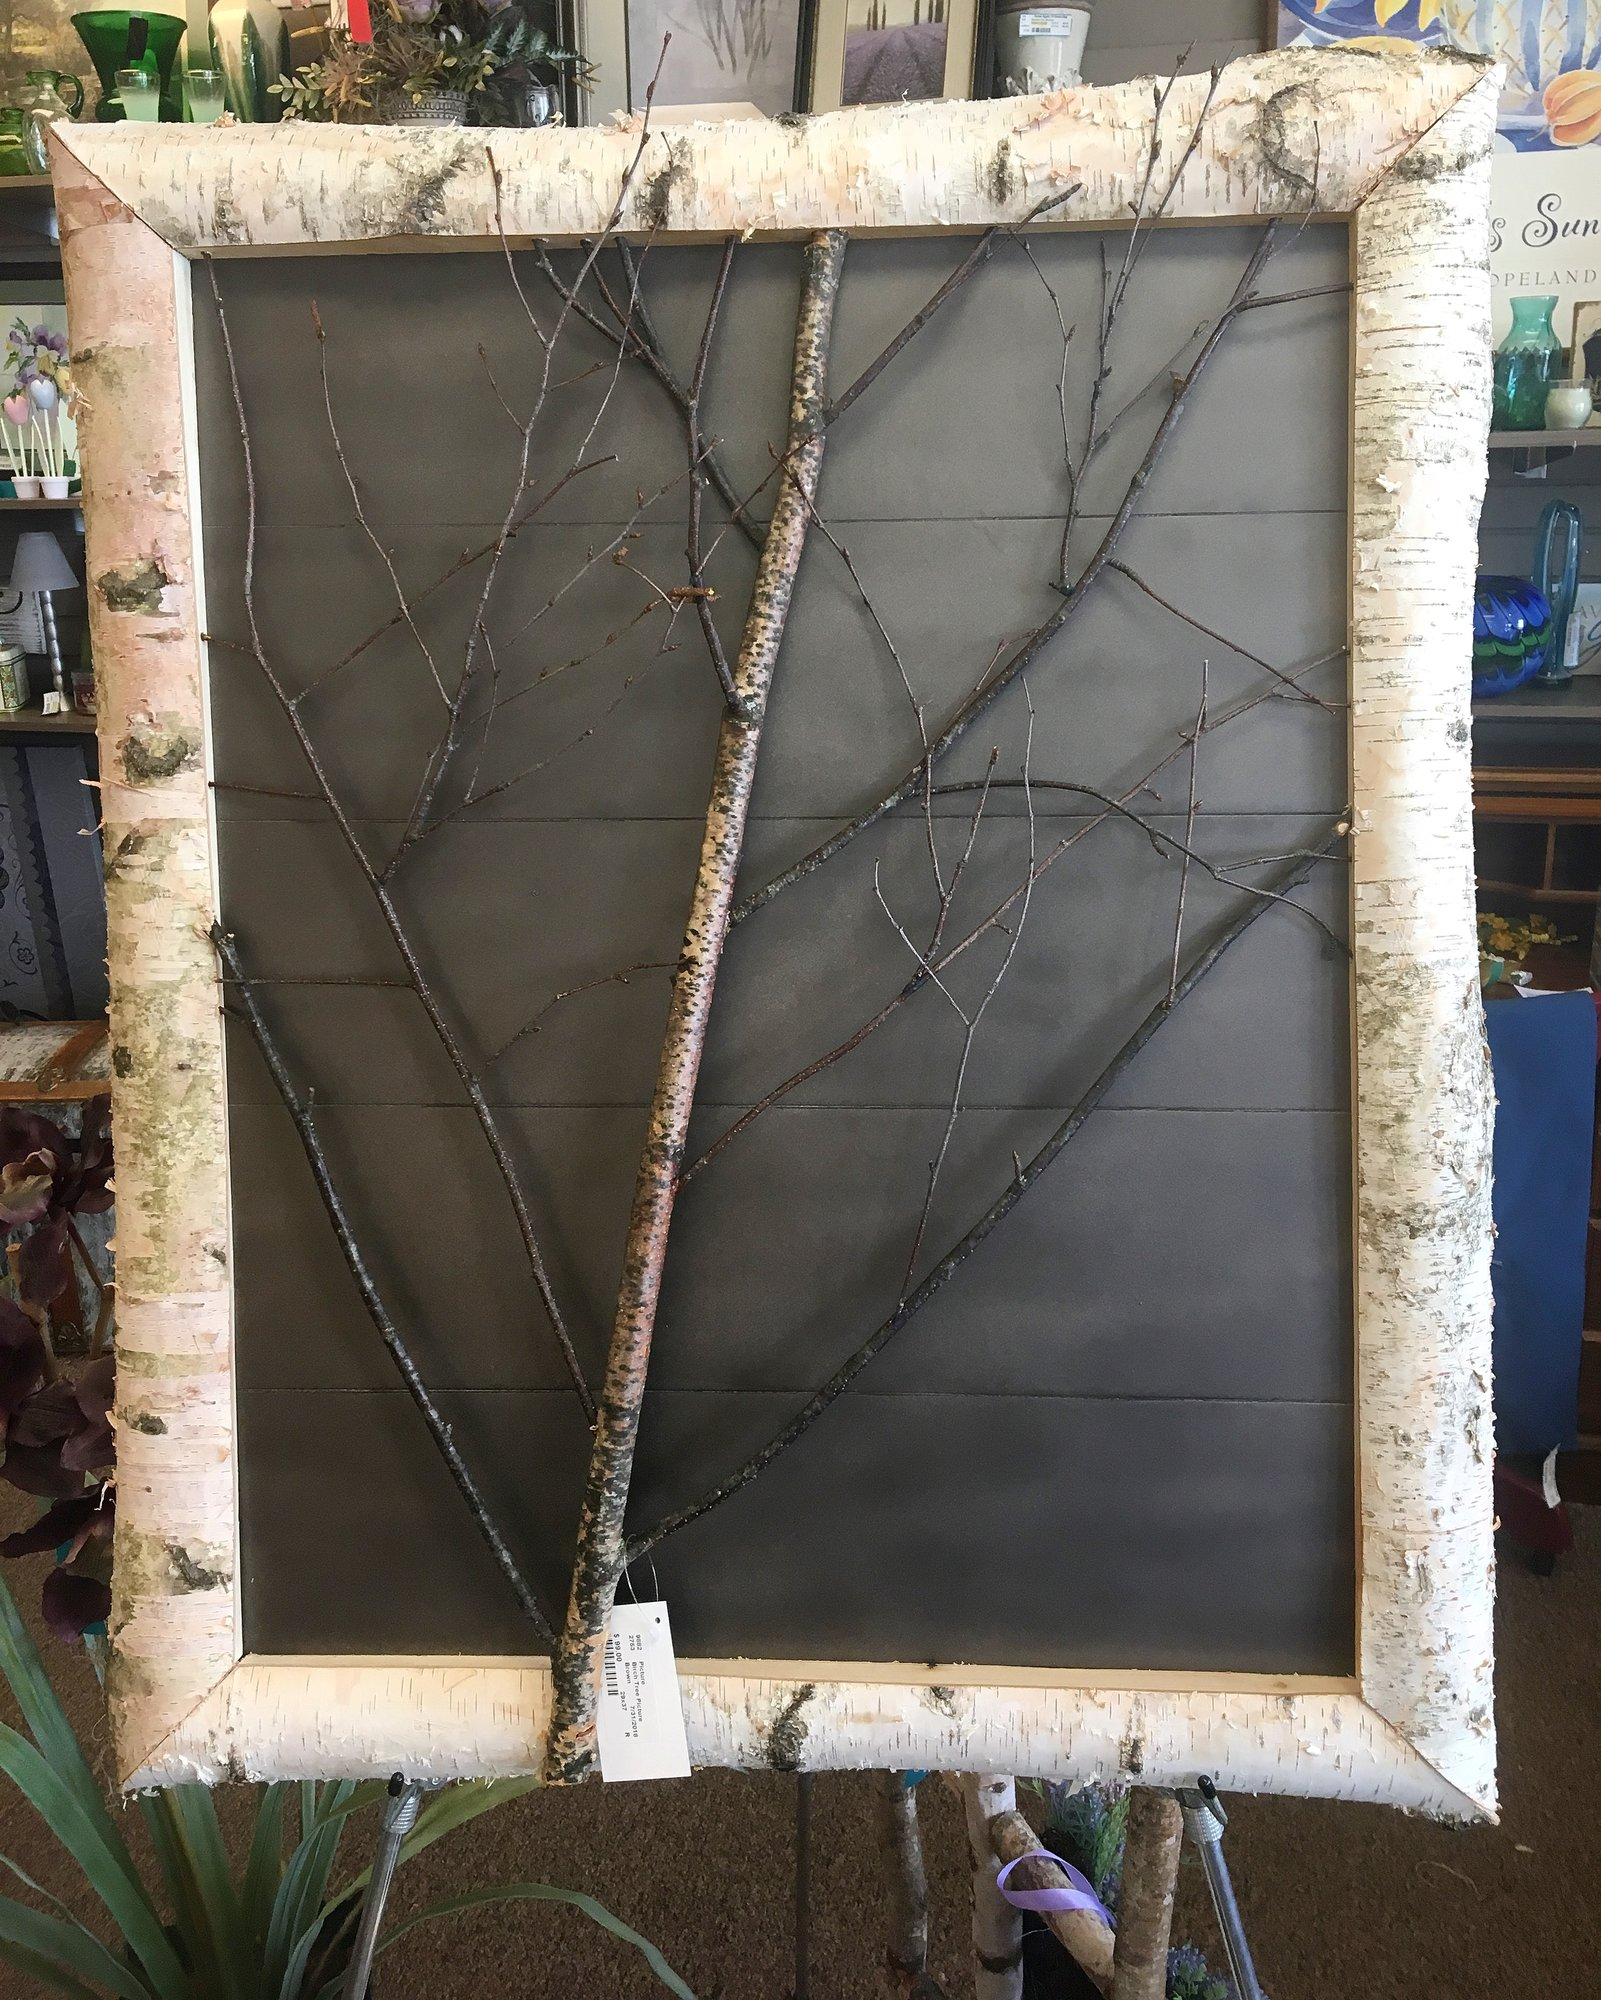 This piece was crafted by a local woodworker and artist. The natural birch wood is harvested locally and makes a beautiful accent piece for any space.